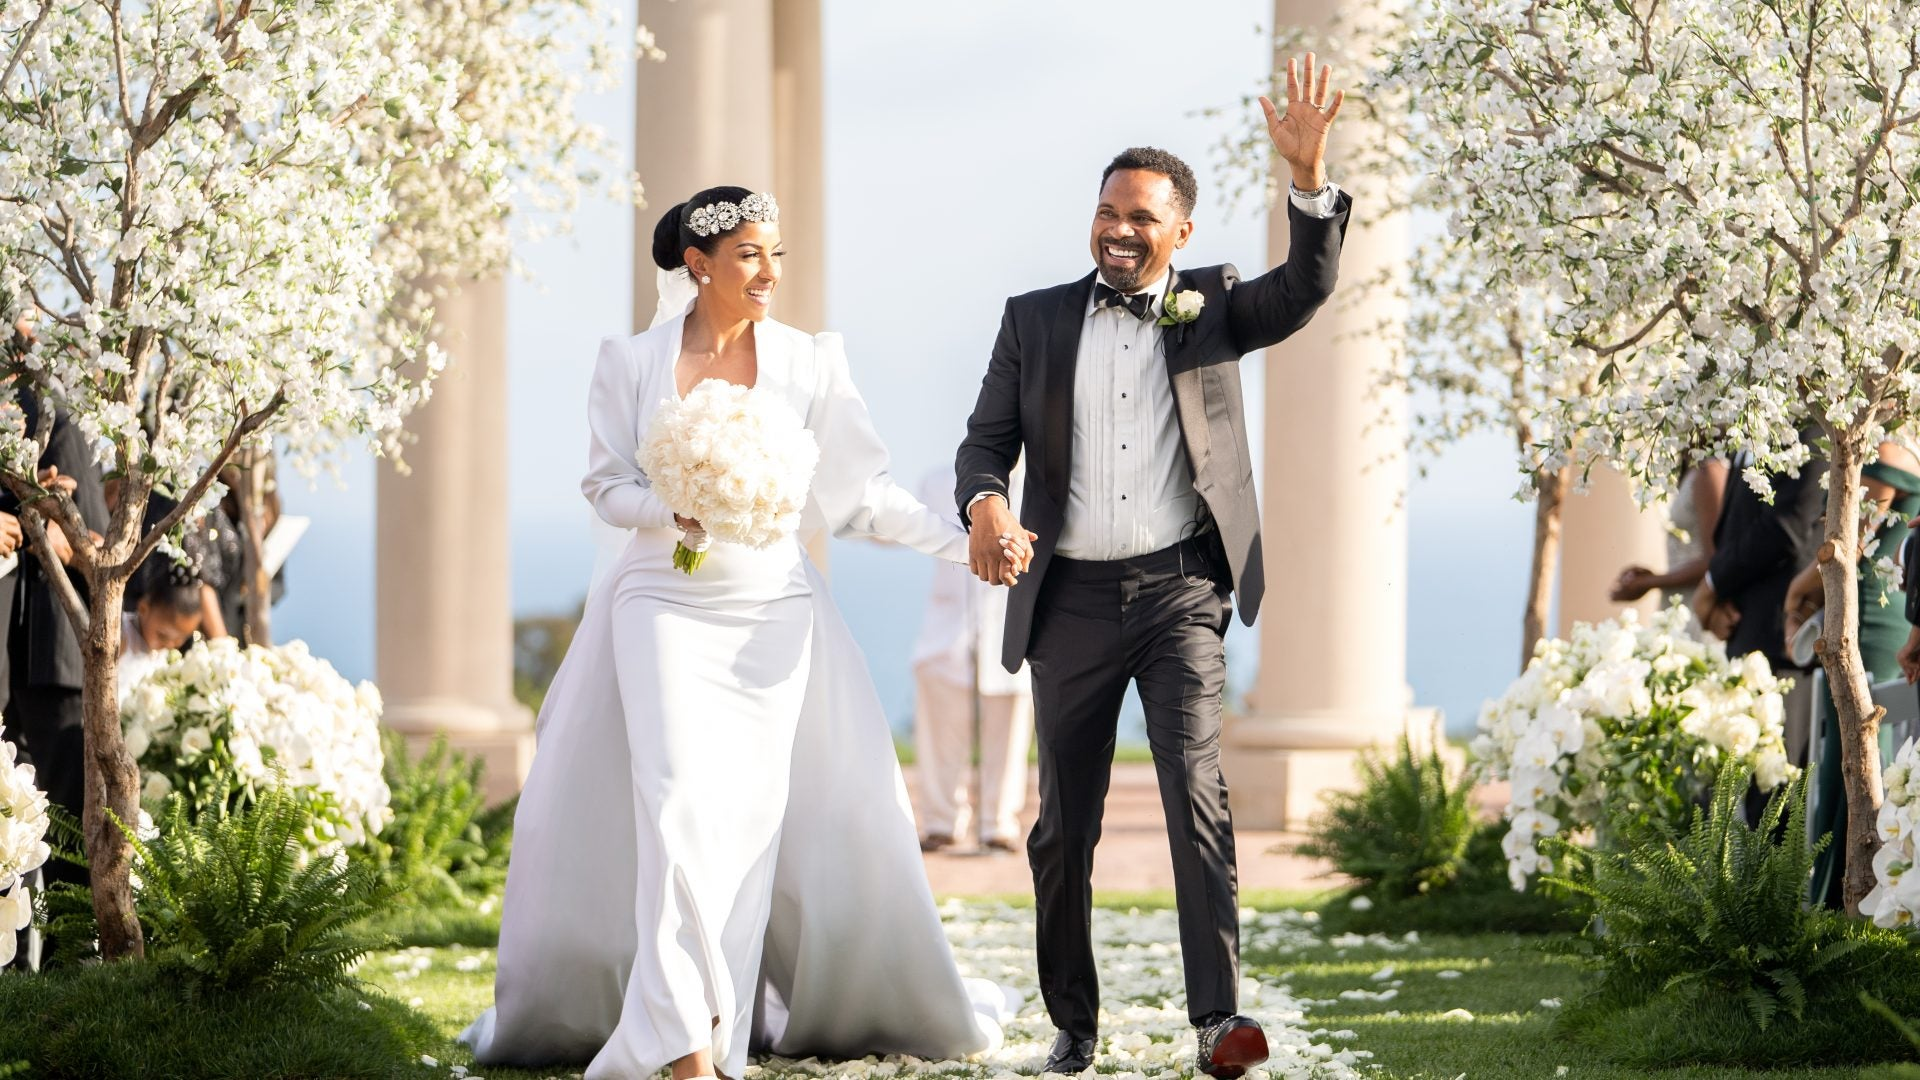 Bridal Bliss Exclusive: Mike and Kyra Epps Share Stunning Photos From Their California Wedding